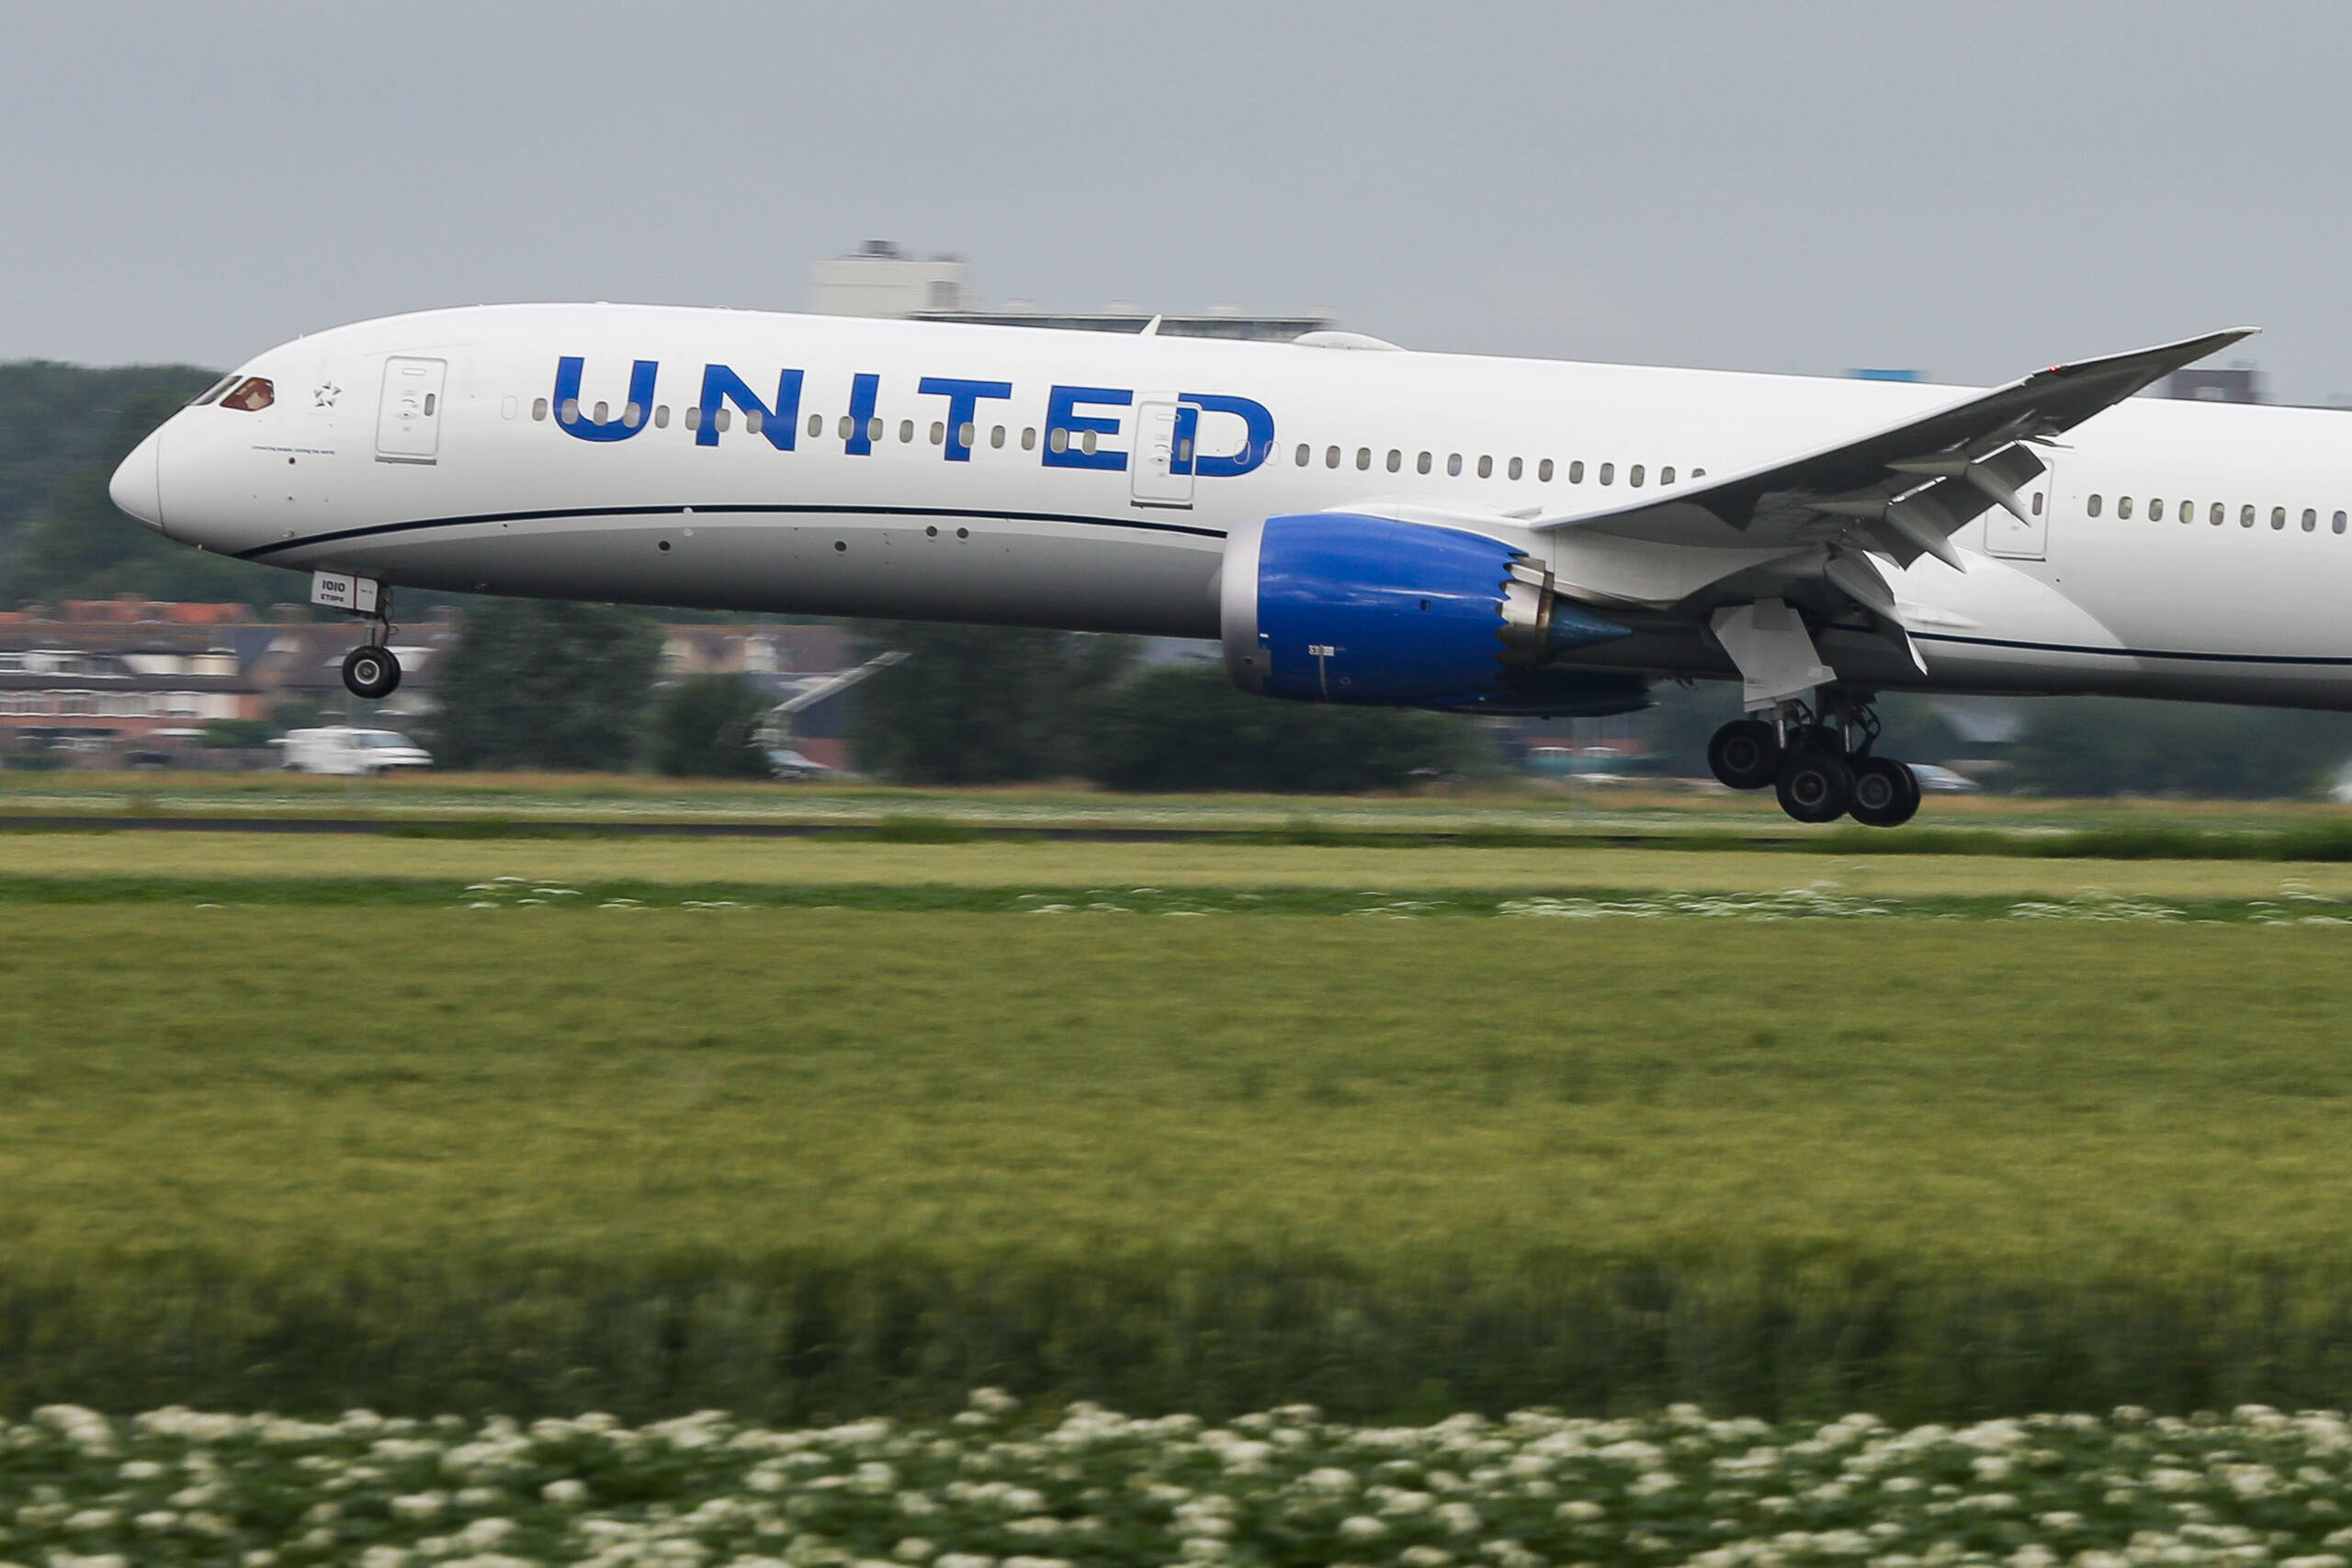 United Airlines: Risk of COVID on planes 'virtually non-existent'